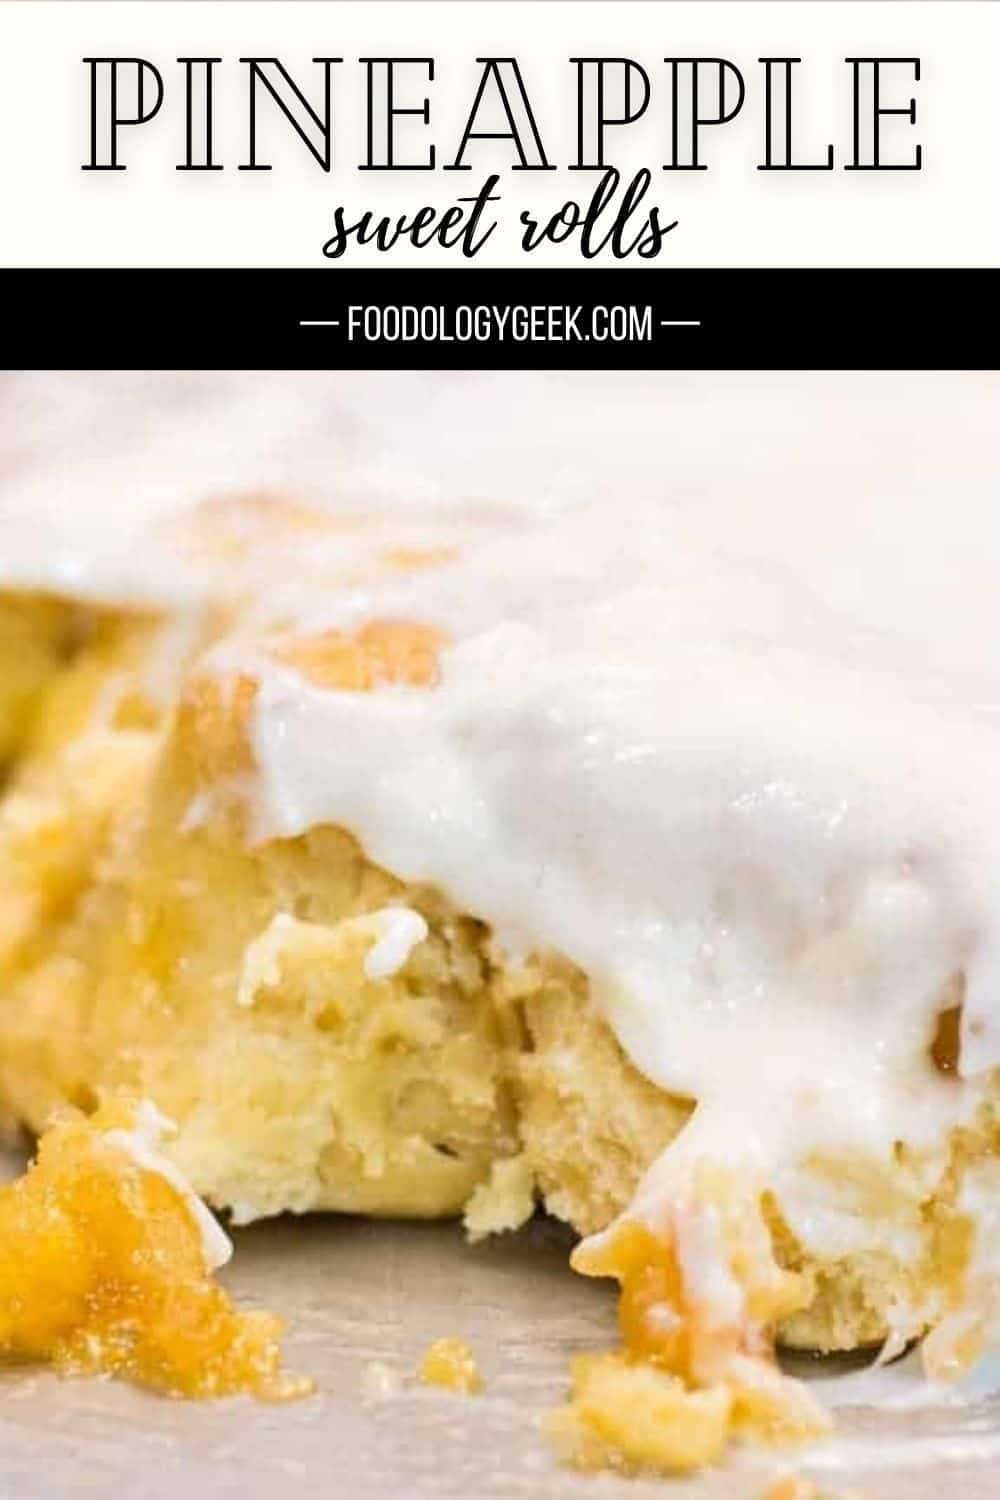 Filled with sticky pineapple caramel and pineapple curd. Then topped with pineapple cream cheese frosting. #hawaiifood #pineapplerolls #islandfood